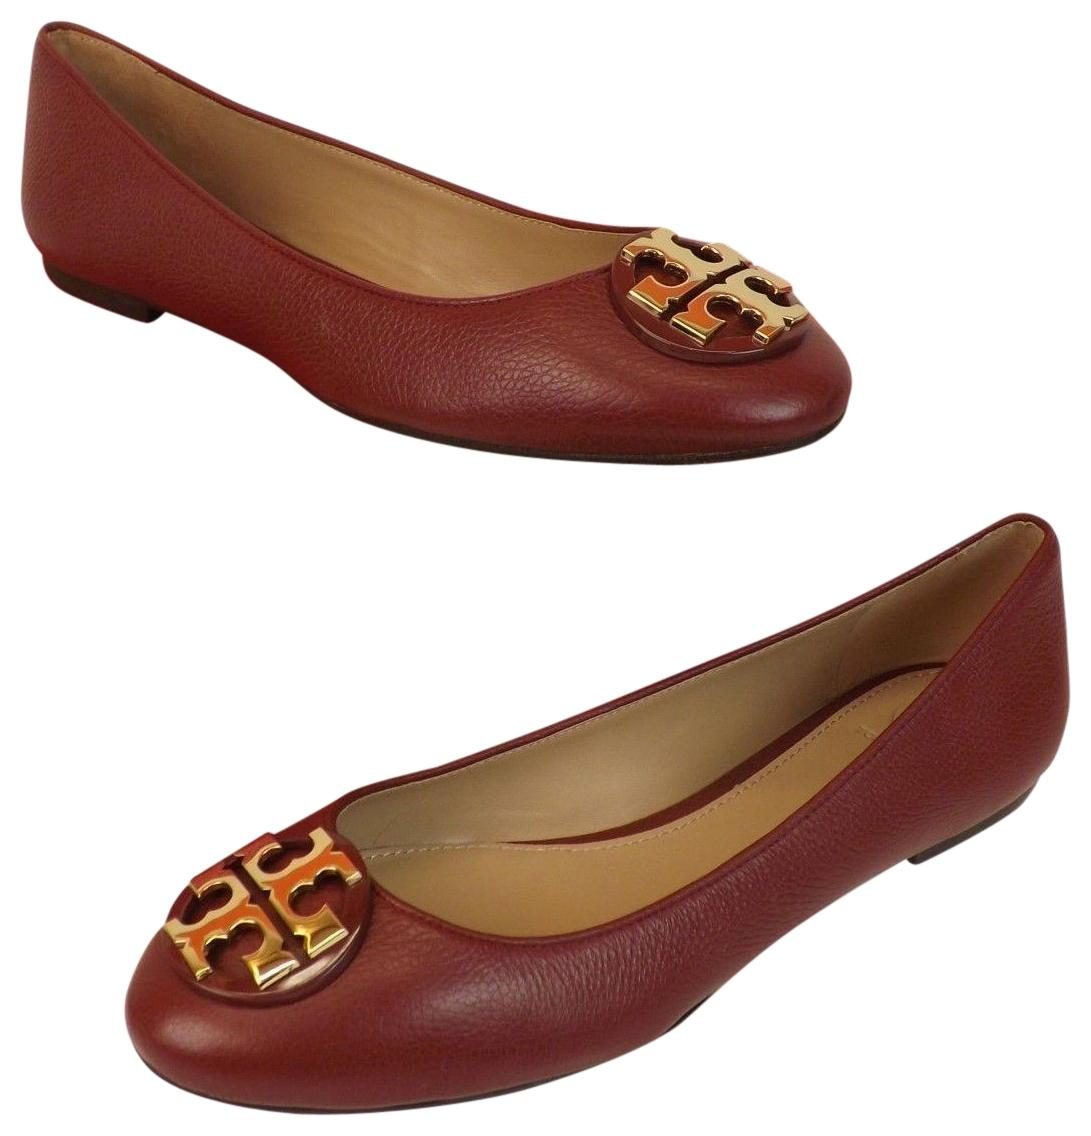 0a55a3eeabf9 ... discount code for tory burch red agate gold flats 409fb 690a3